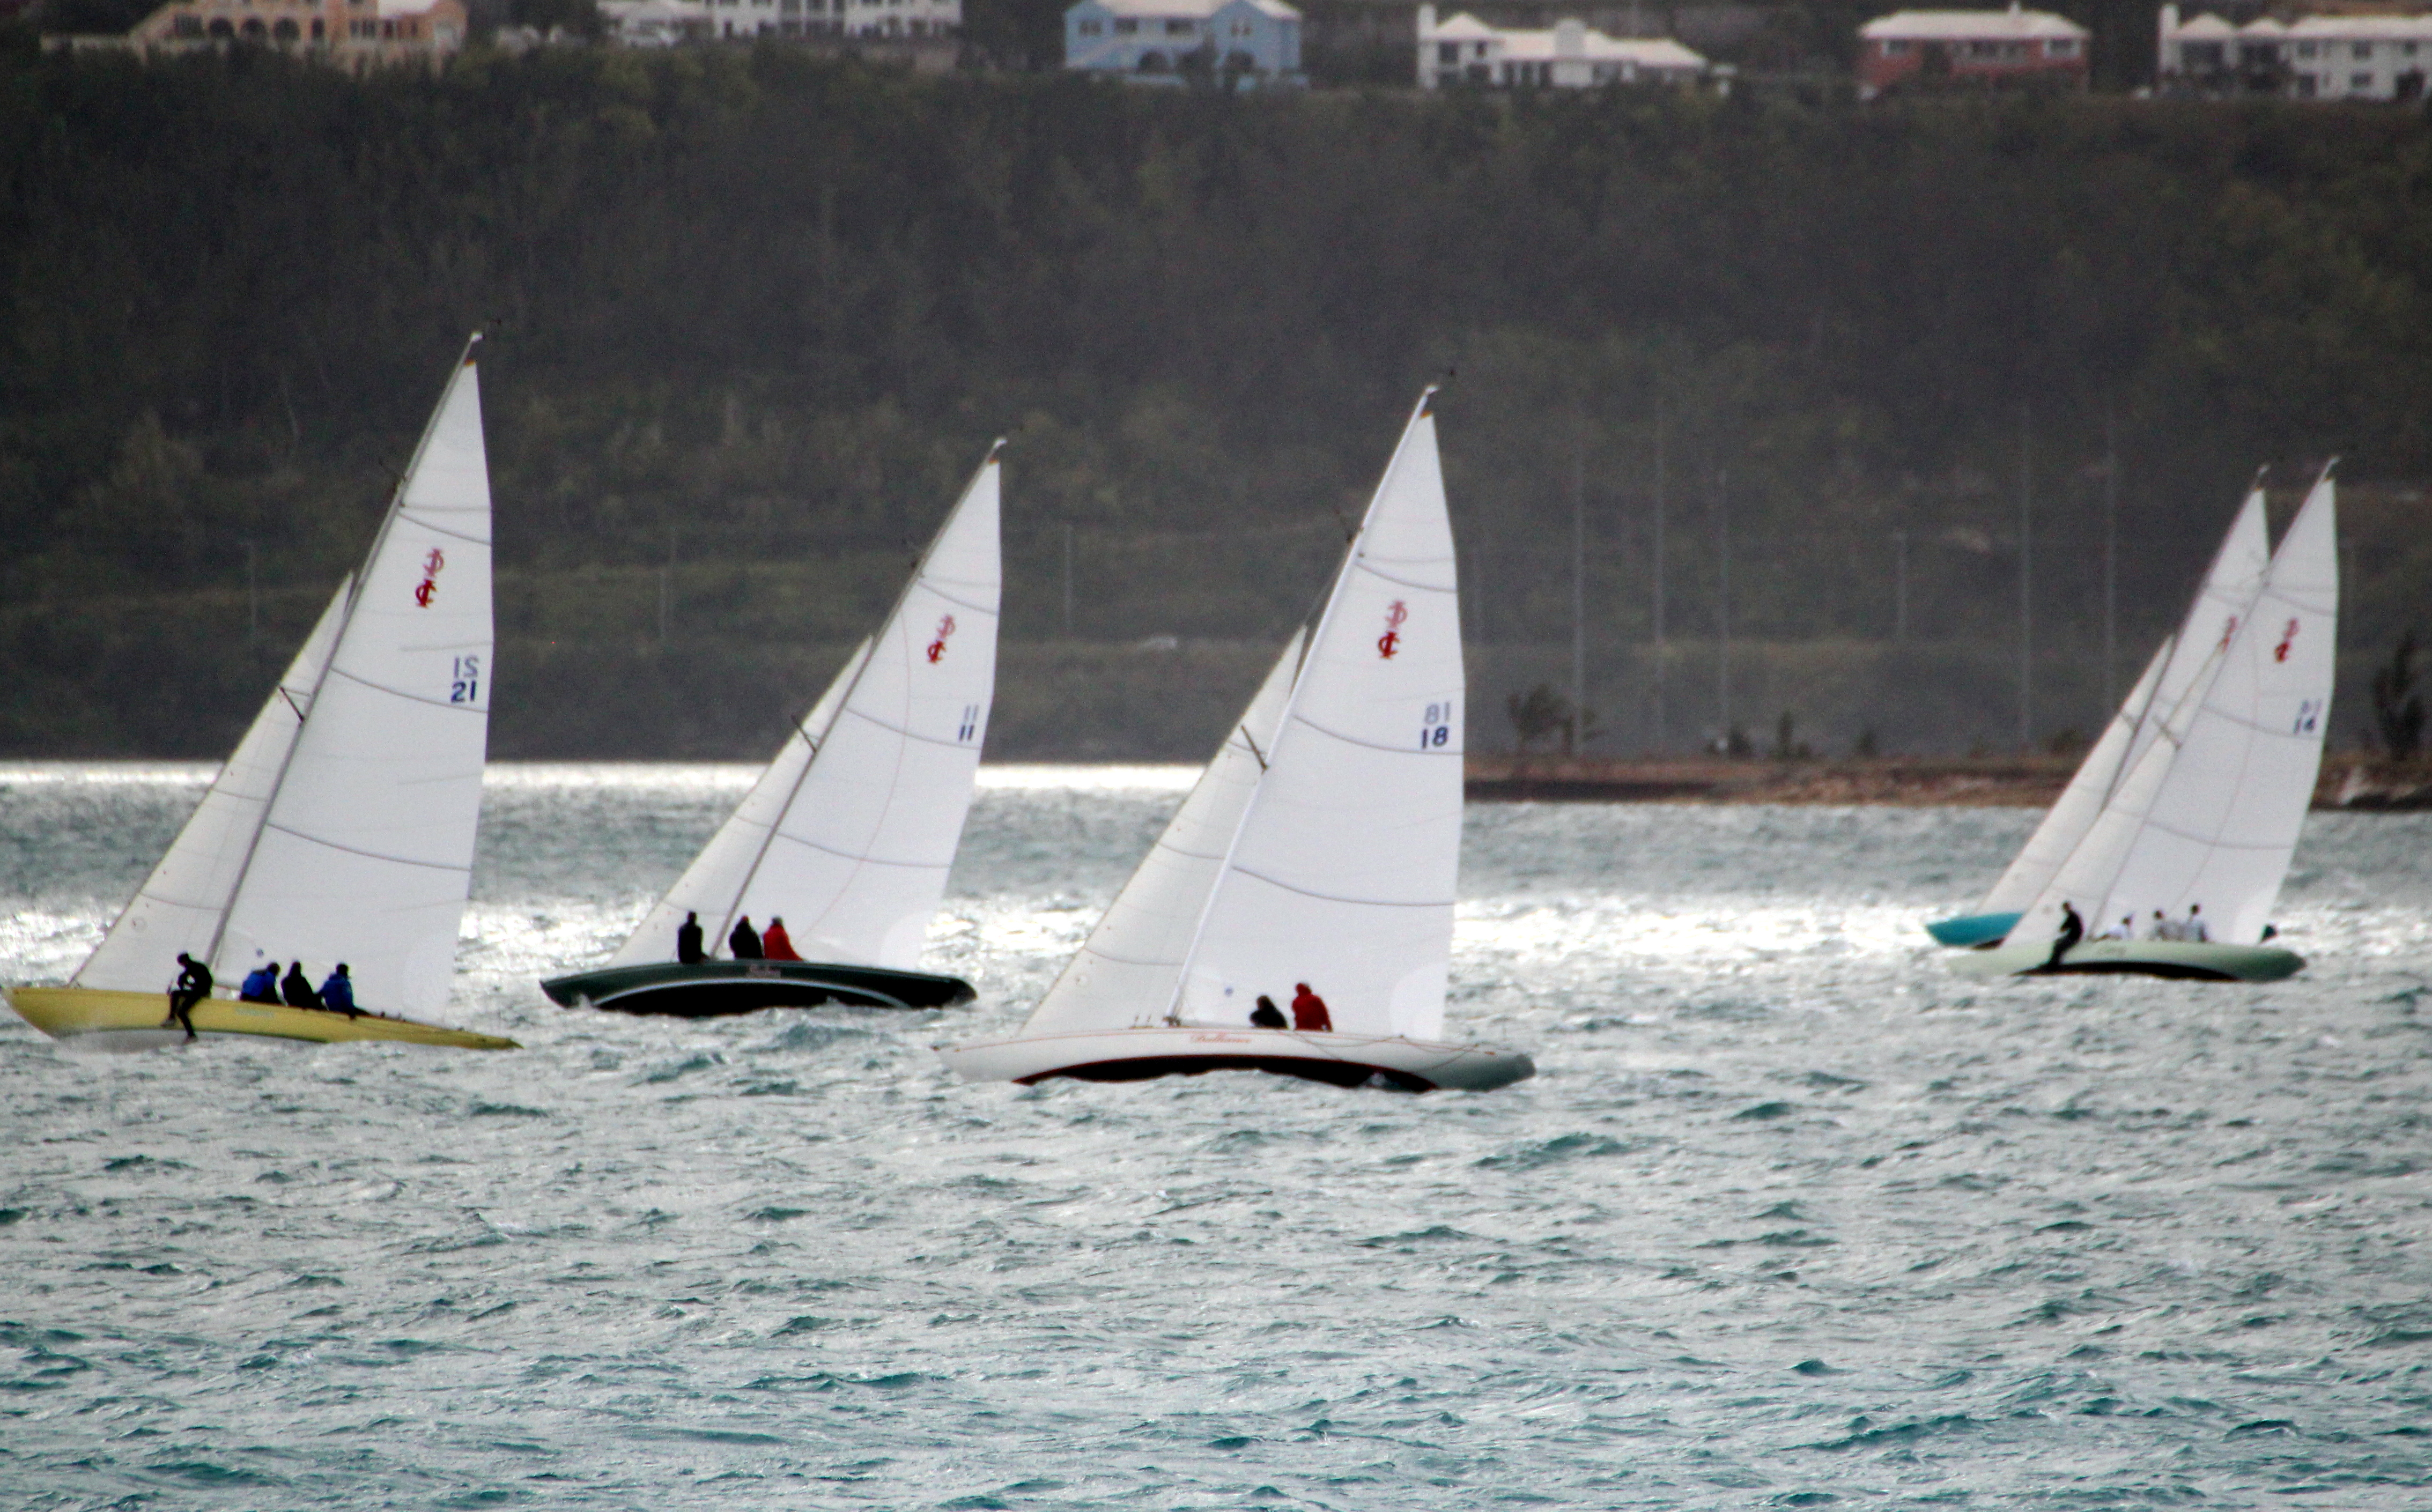 Bermuda Keelboat Championships 2020 Day Two (Sailing)